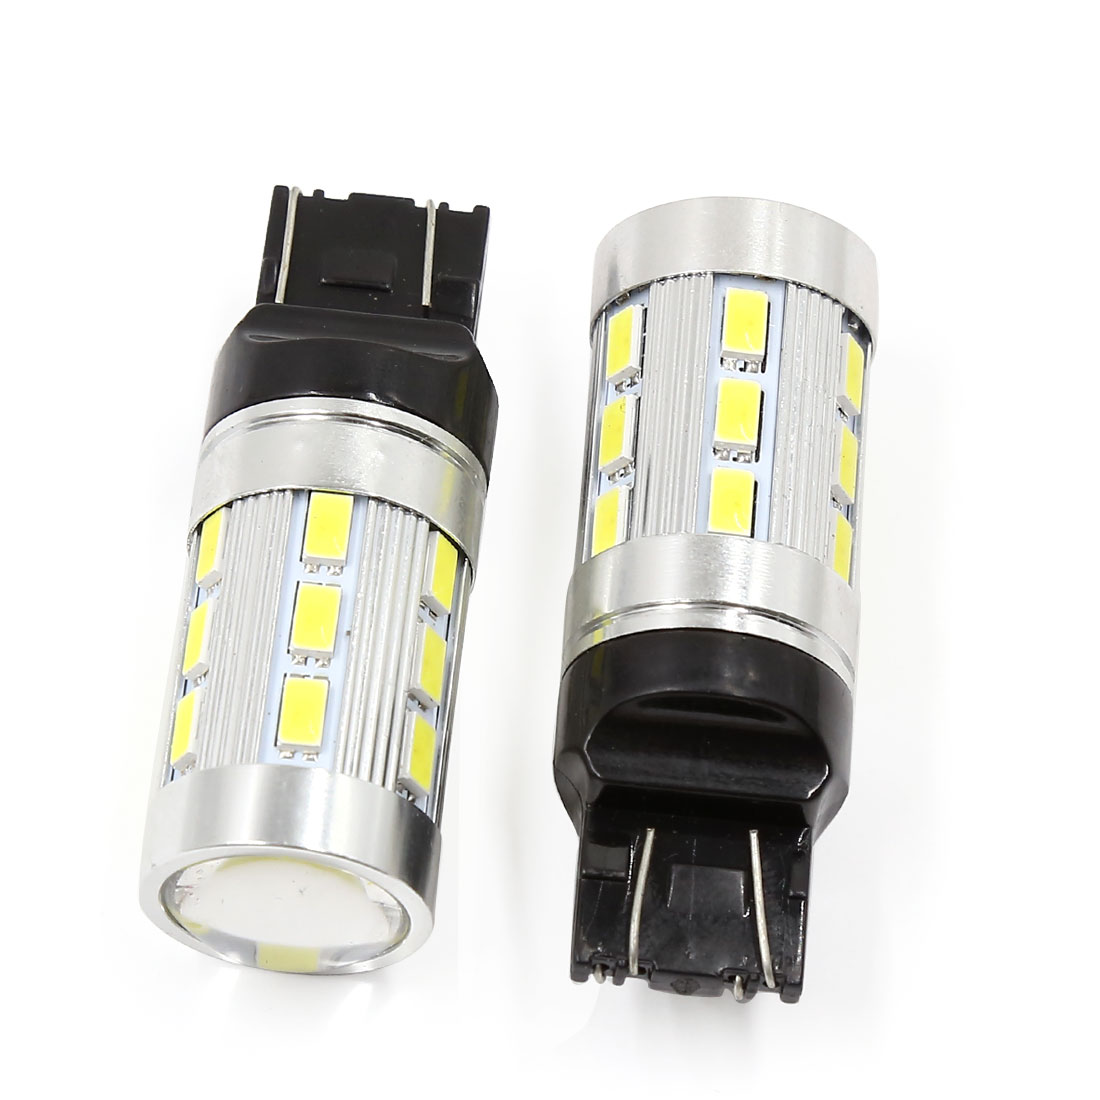 2 Pcs 7443 White Red 5630 SMD 24-LED Dual Color Switchback Projector Light Bulbs